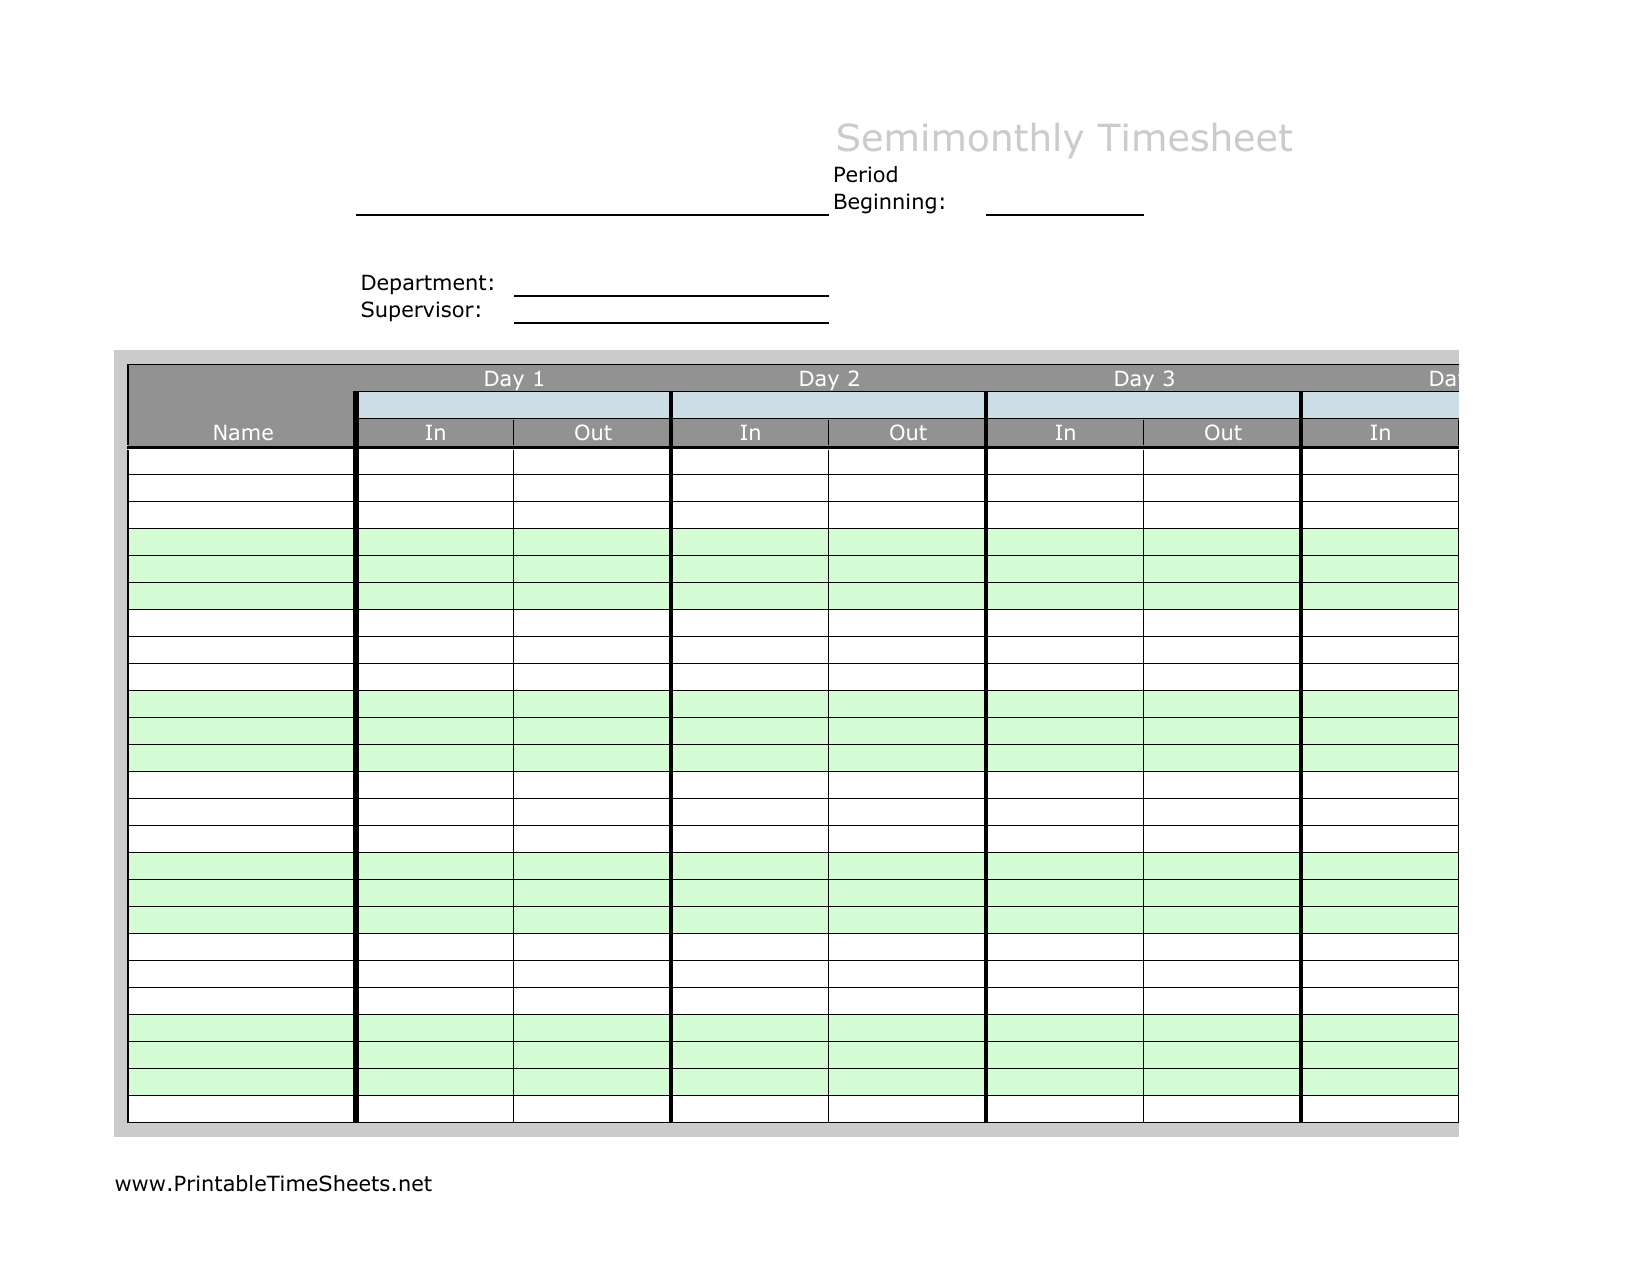 download semi month timesheet template excel pdf rtf word